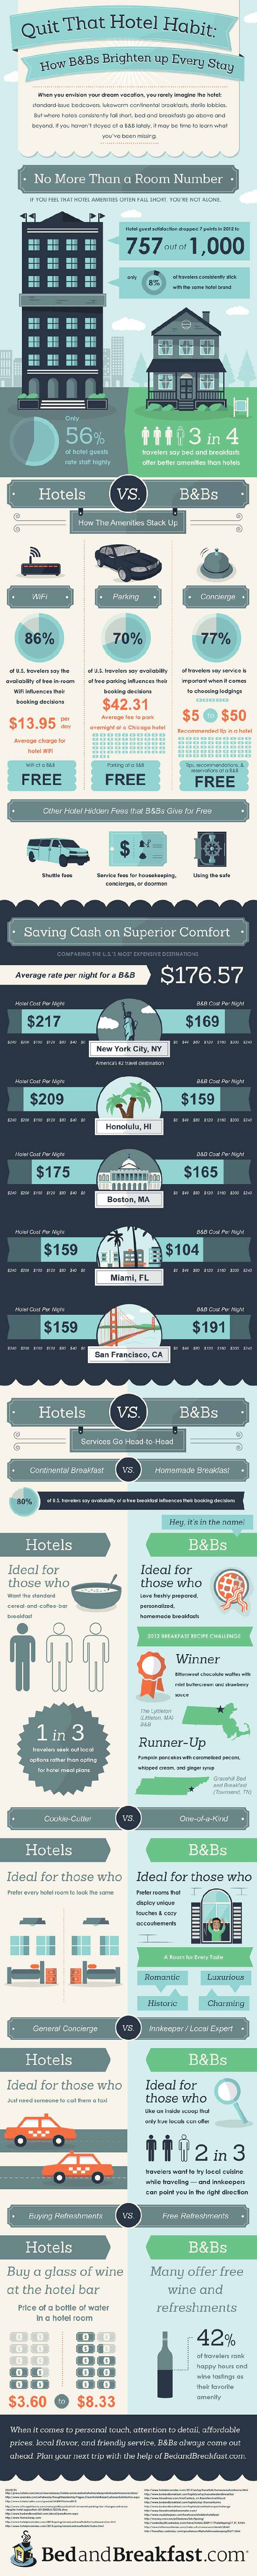 Infographic Hotels vs b&b's